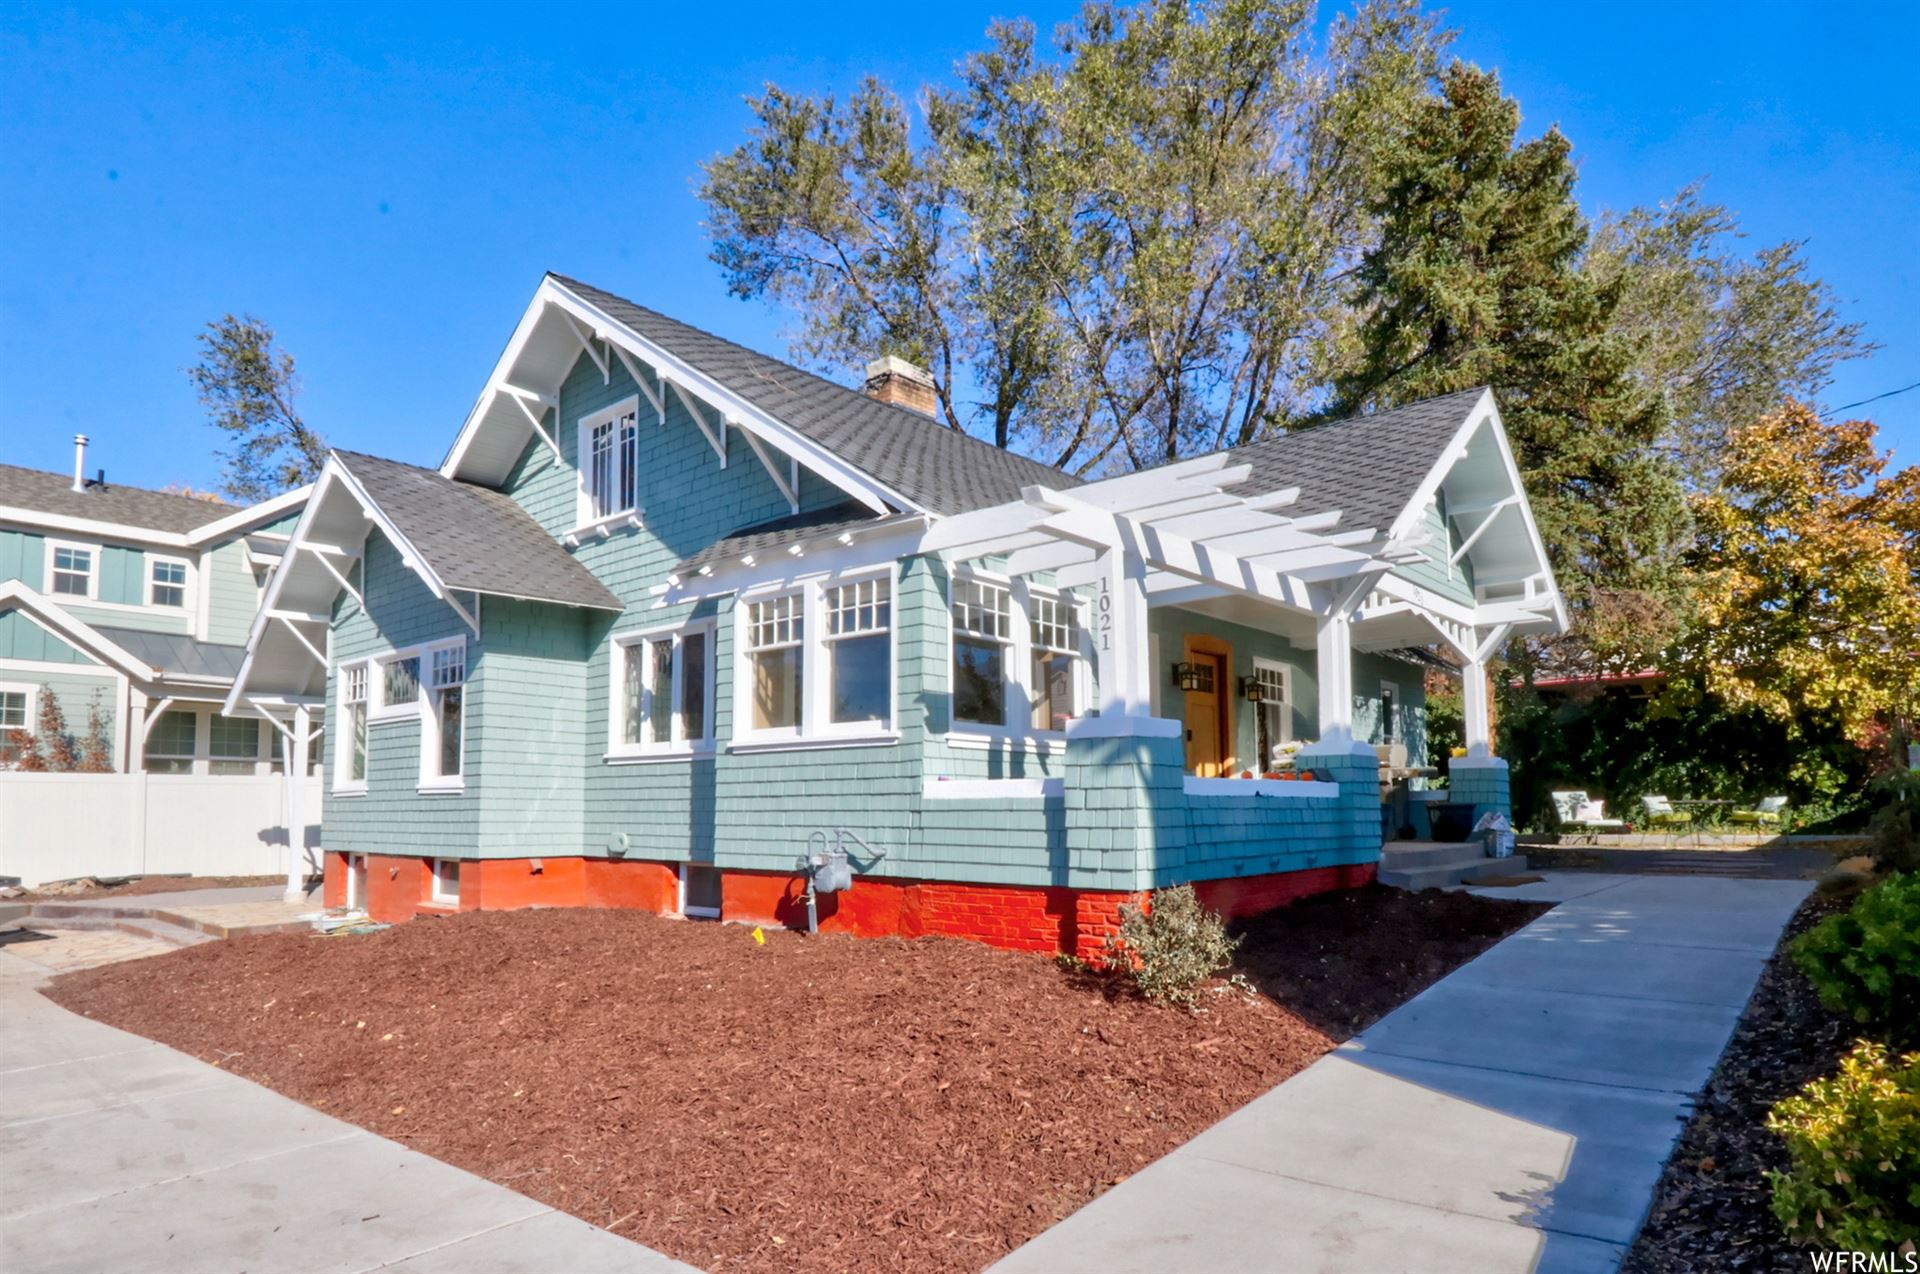 Photo of 1021 E 2700 S, Salt Lake City, UT 84106 (MLS # 1710331)